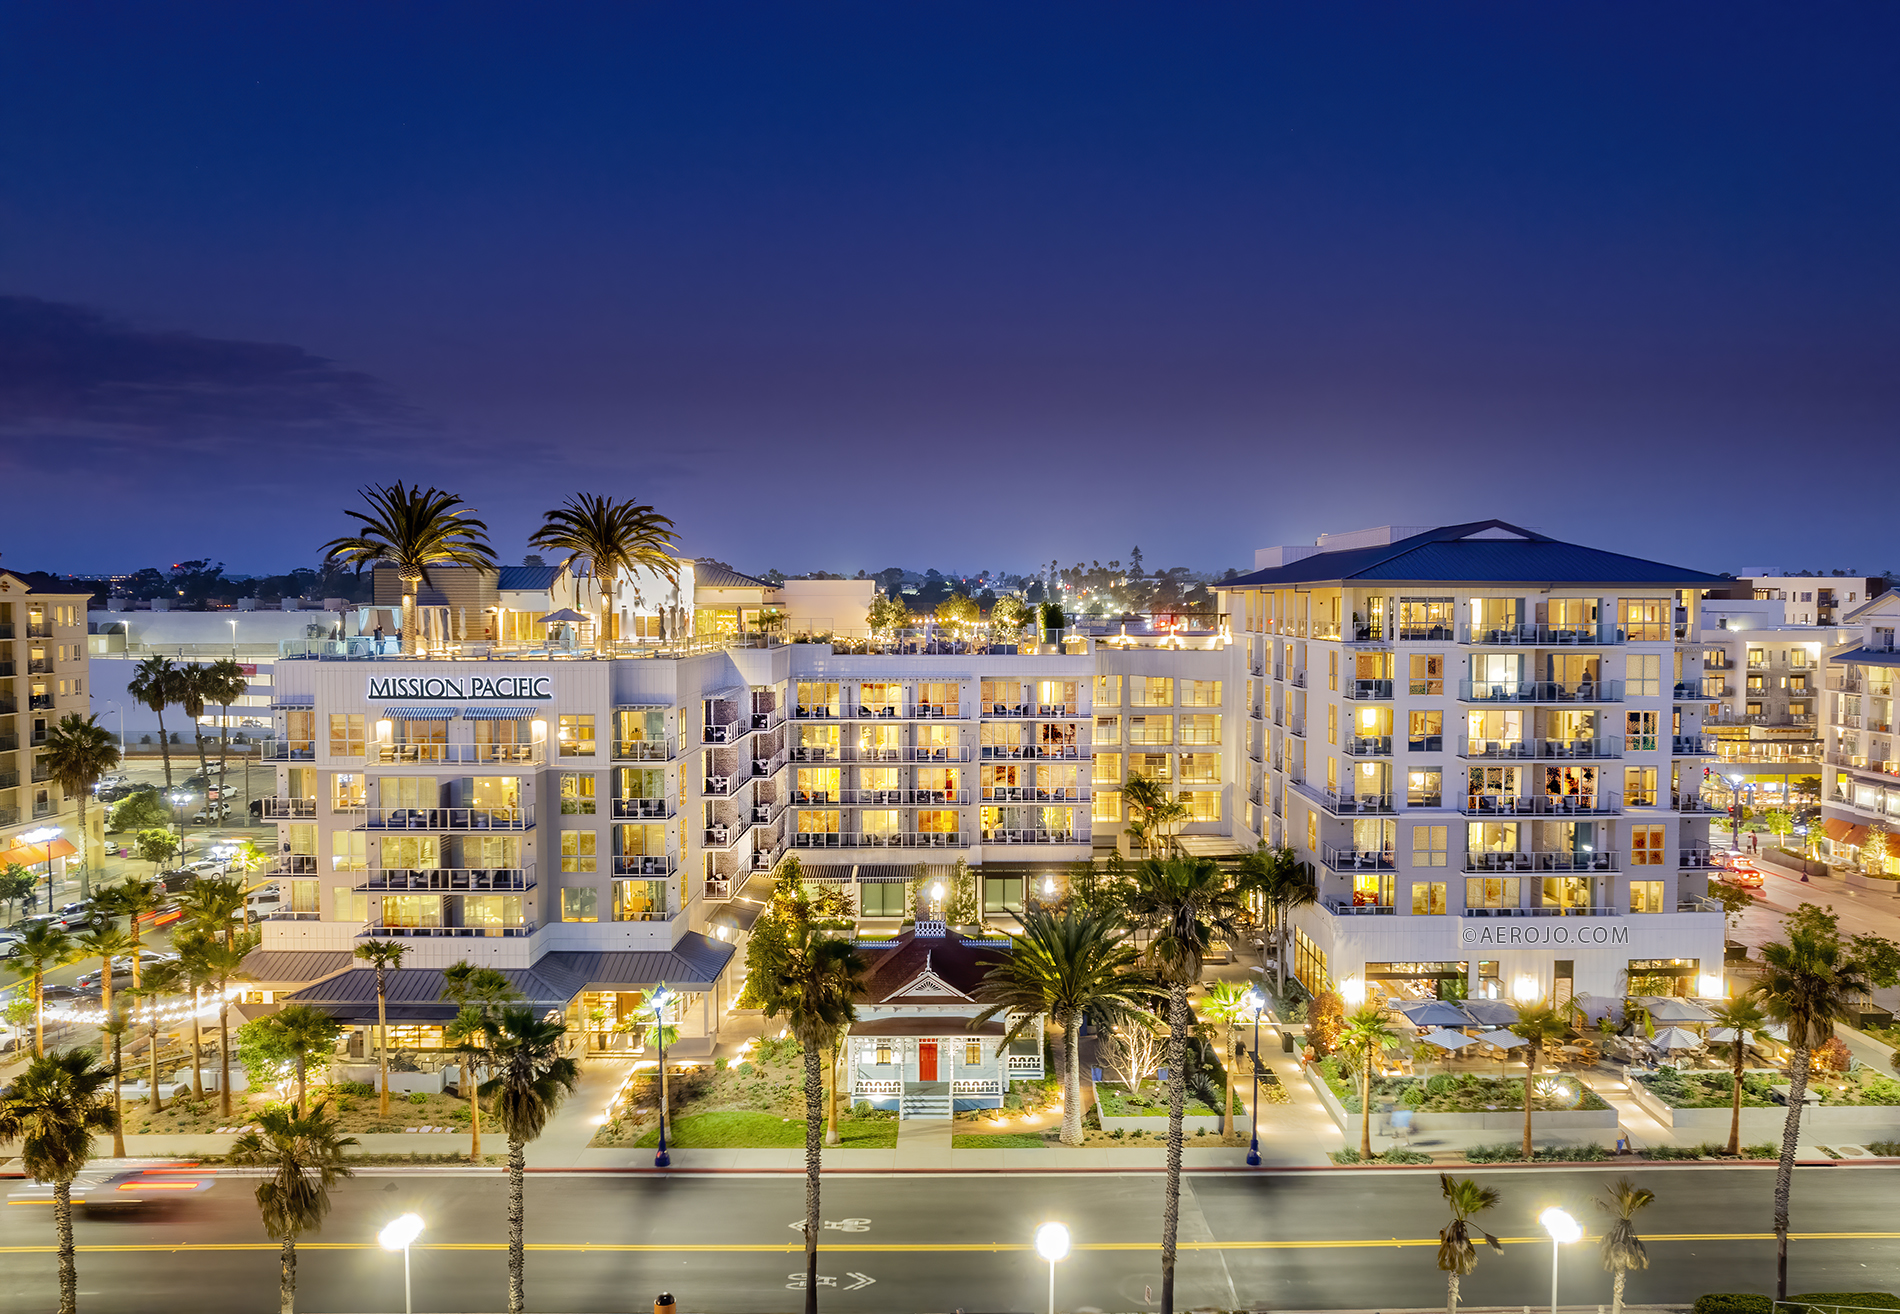 Drone Photograph of the Mission Pacific Hotel at Night